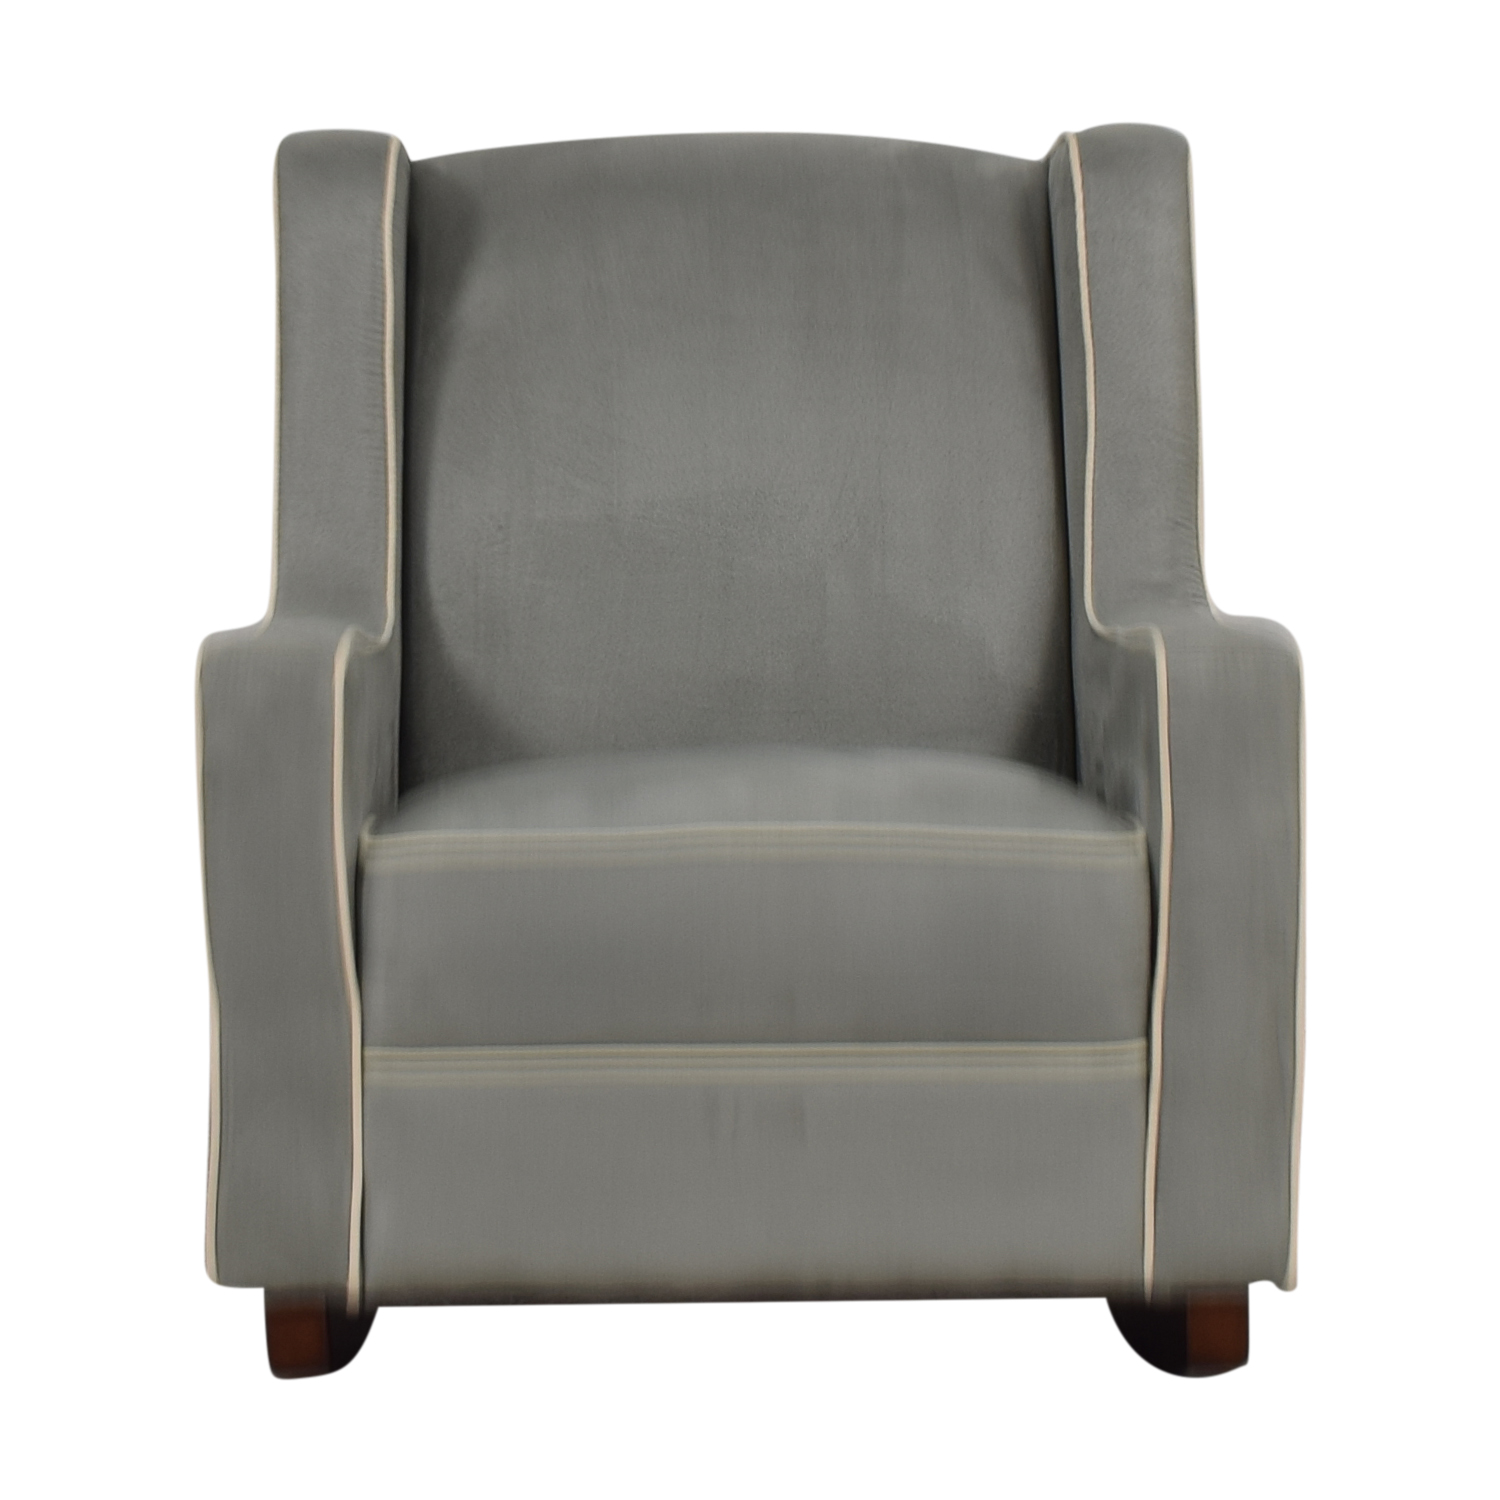 shop Viv + Rae Sanders Viv + Rae Sanders Grey with Beige Piping Compact Plush Rocking Chair online